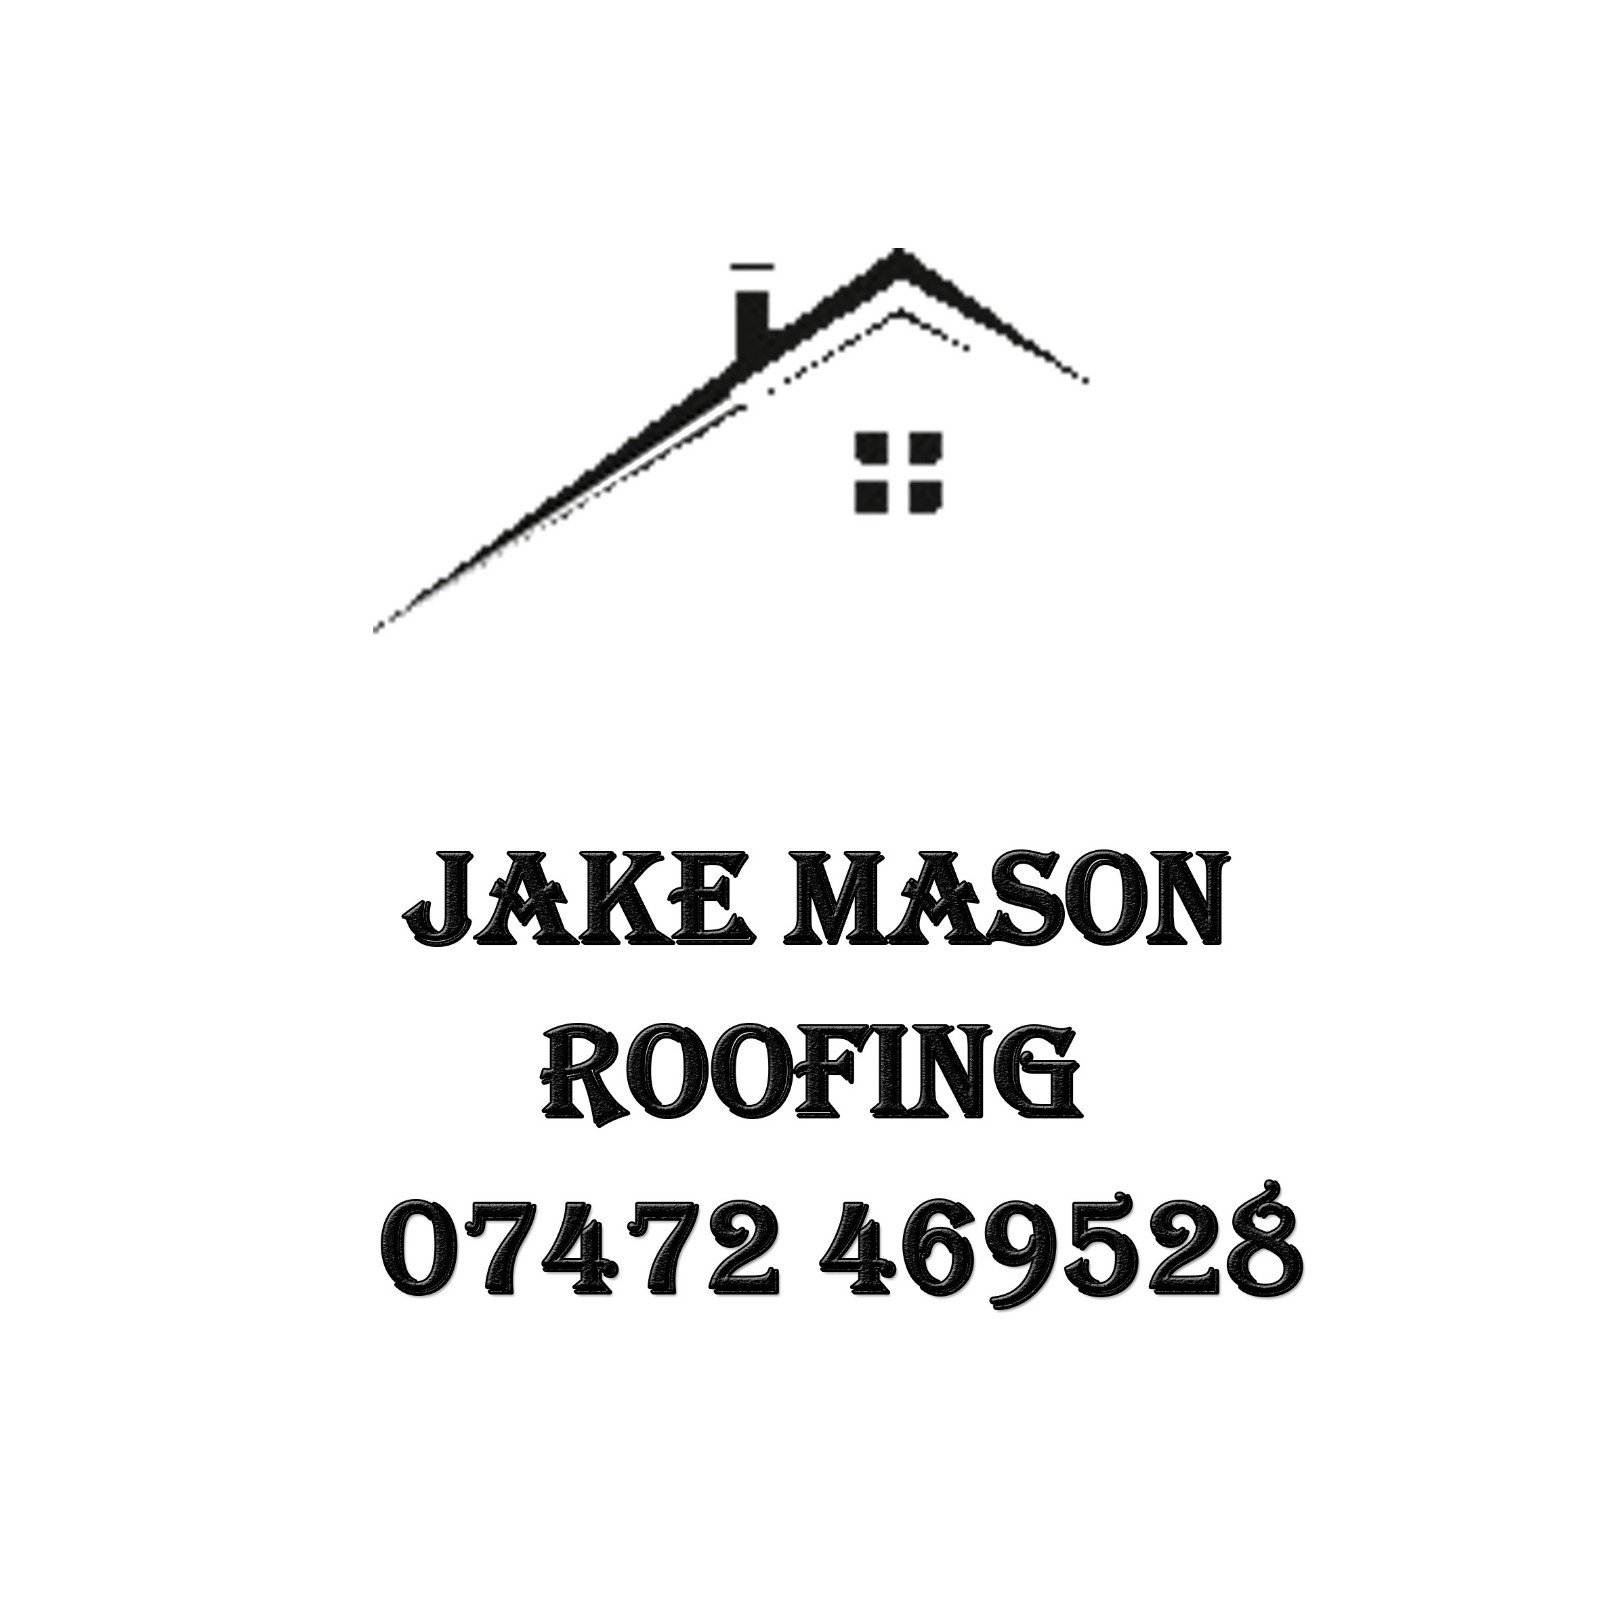 masons roofing